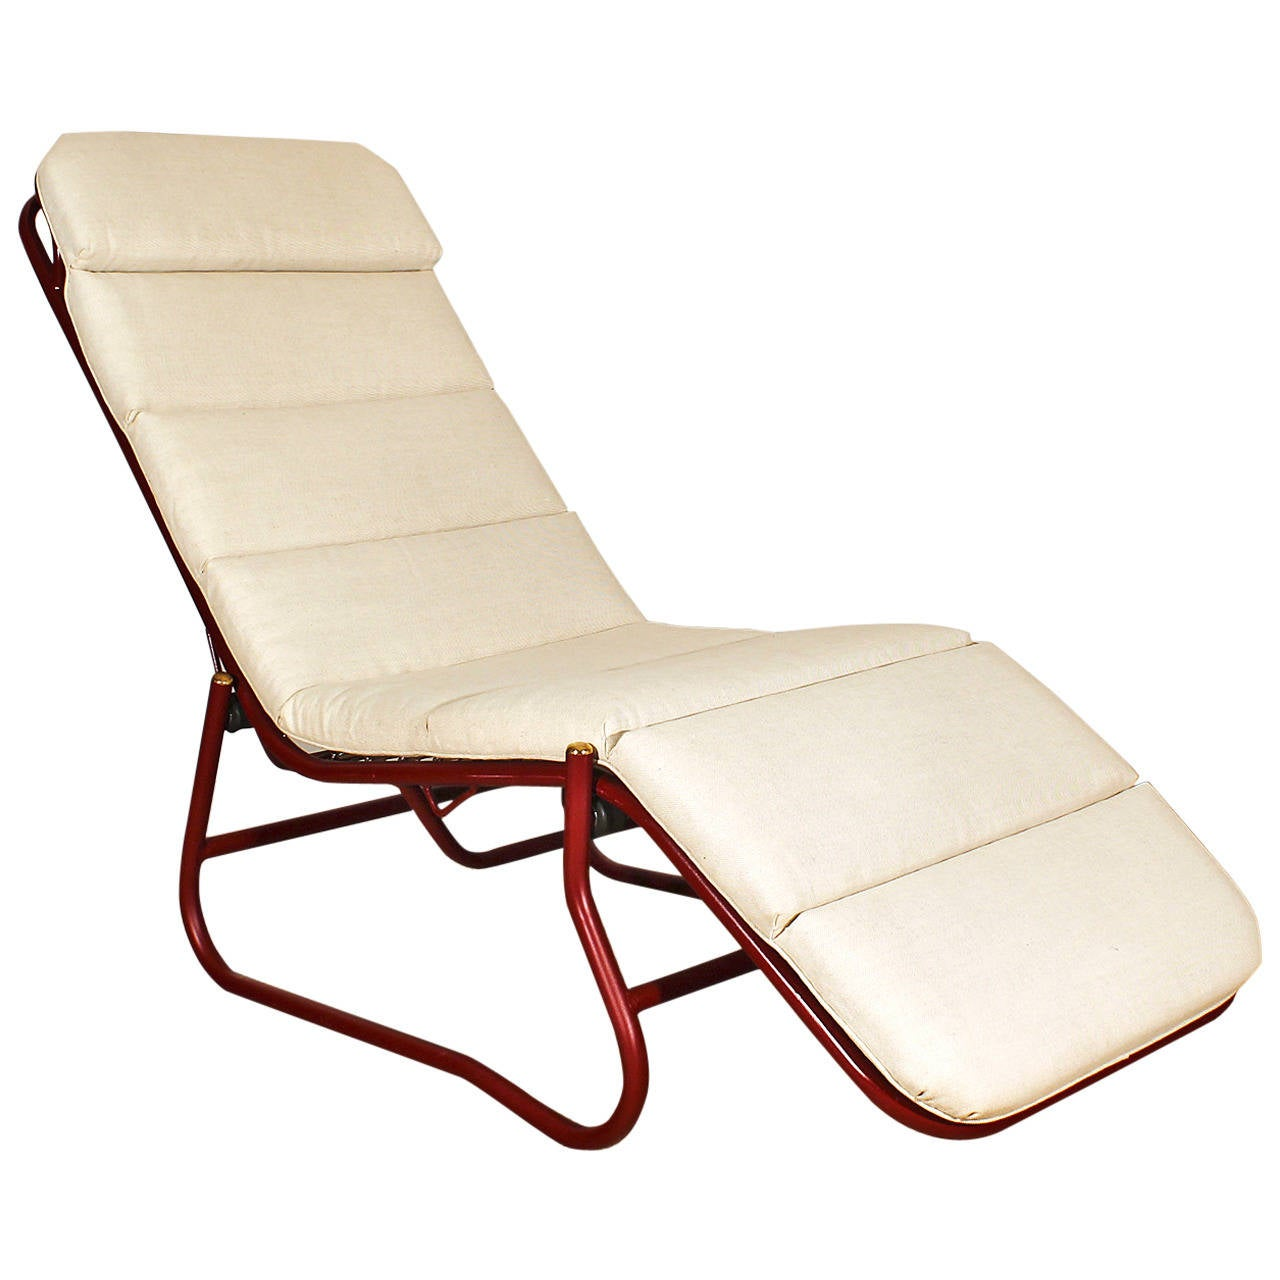 french bauhaus style chaise longue at 1stdibs. Black Bedroom Furniture Sets. Home Design Ideas